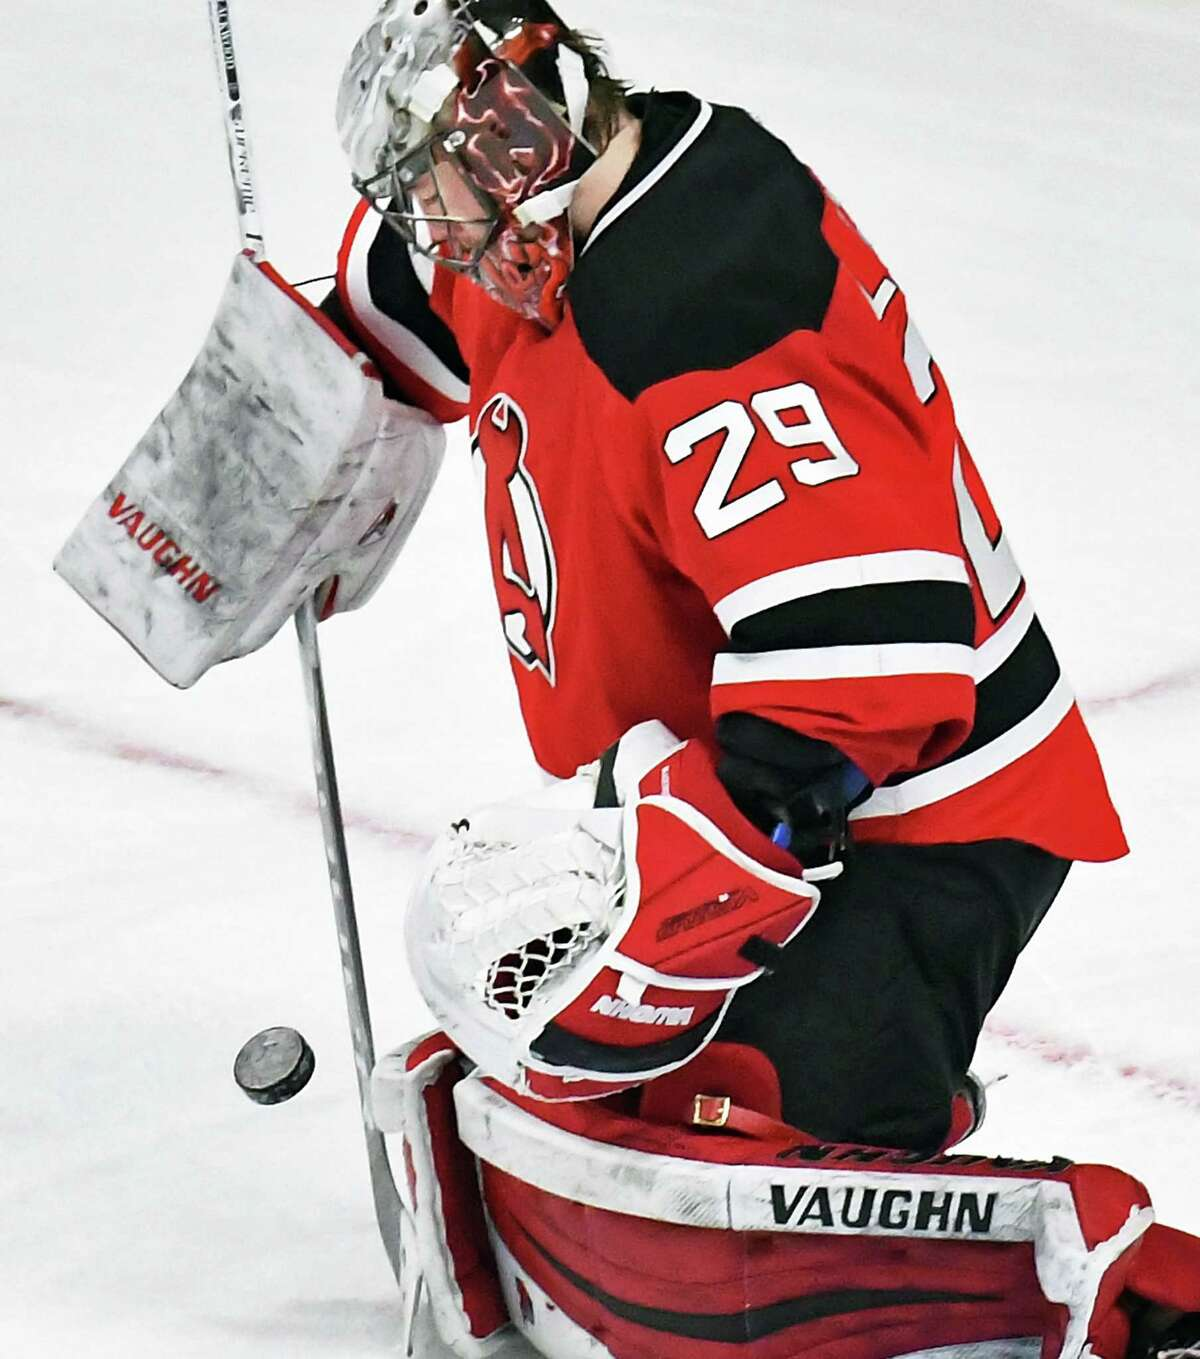 Albany Devils goalie #29 Mackenzie Blackwood stops a shot by the Springfield Thunderbirds during Friday's game at the Times Union Center March 17, 2017 in Albany, NY. (John Carl D'Annibale / Times Union)